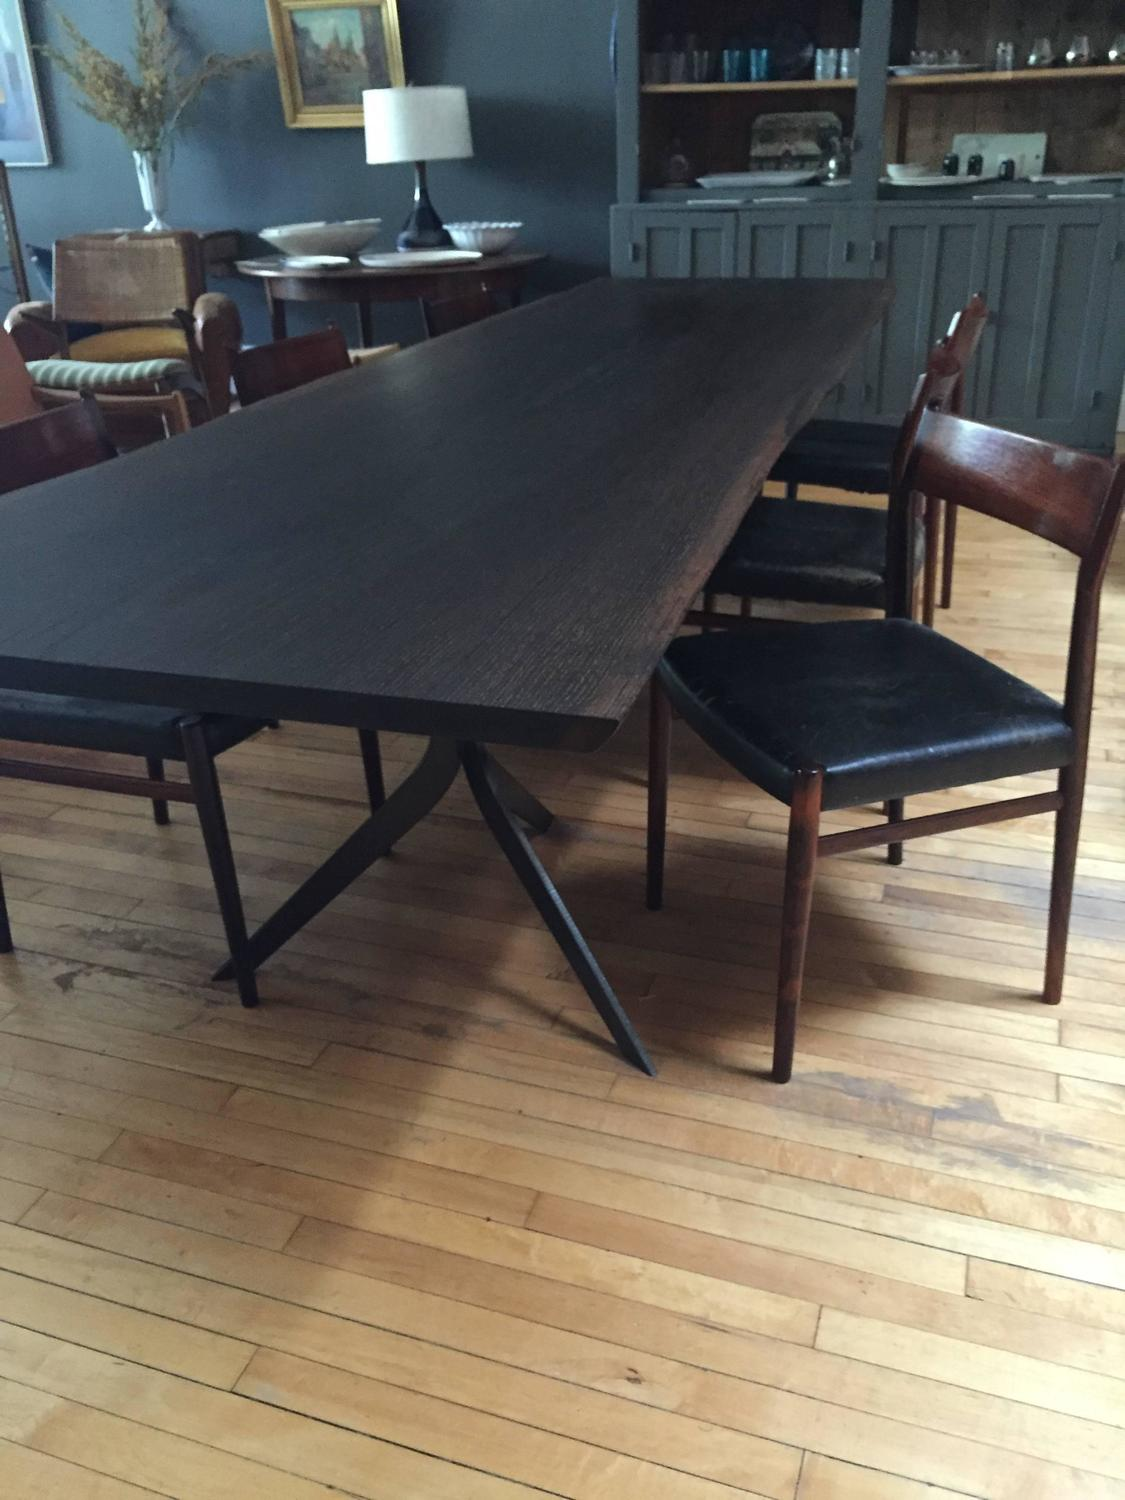 10ft live edge blackened red oak and steel dining table by for 10 ft dining table sale